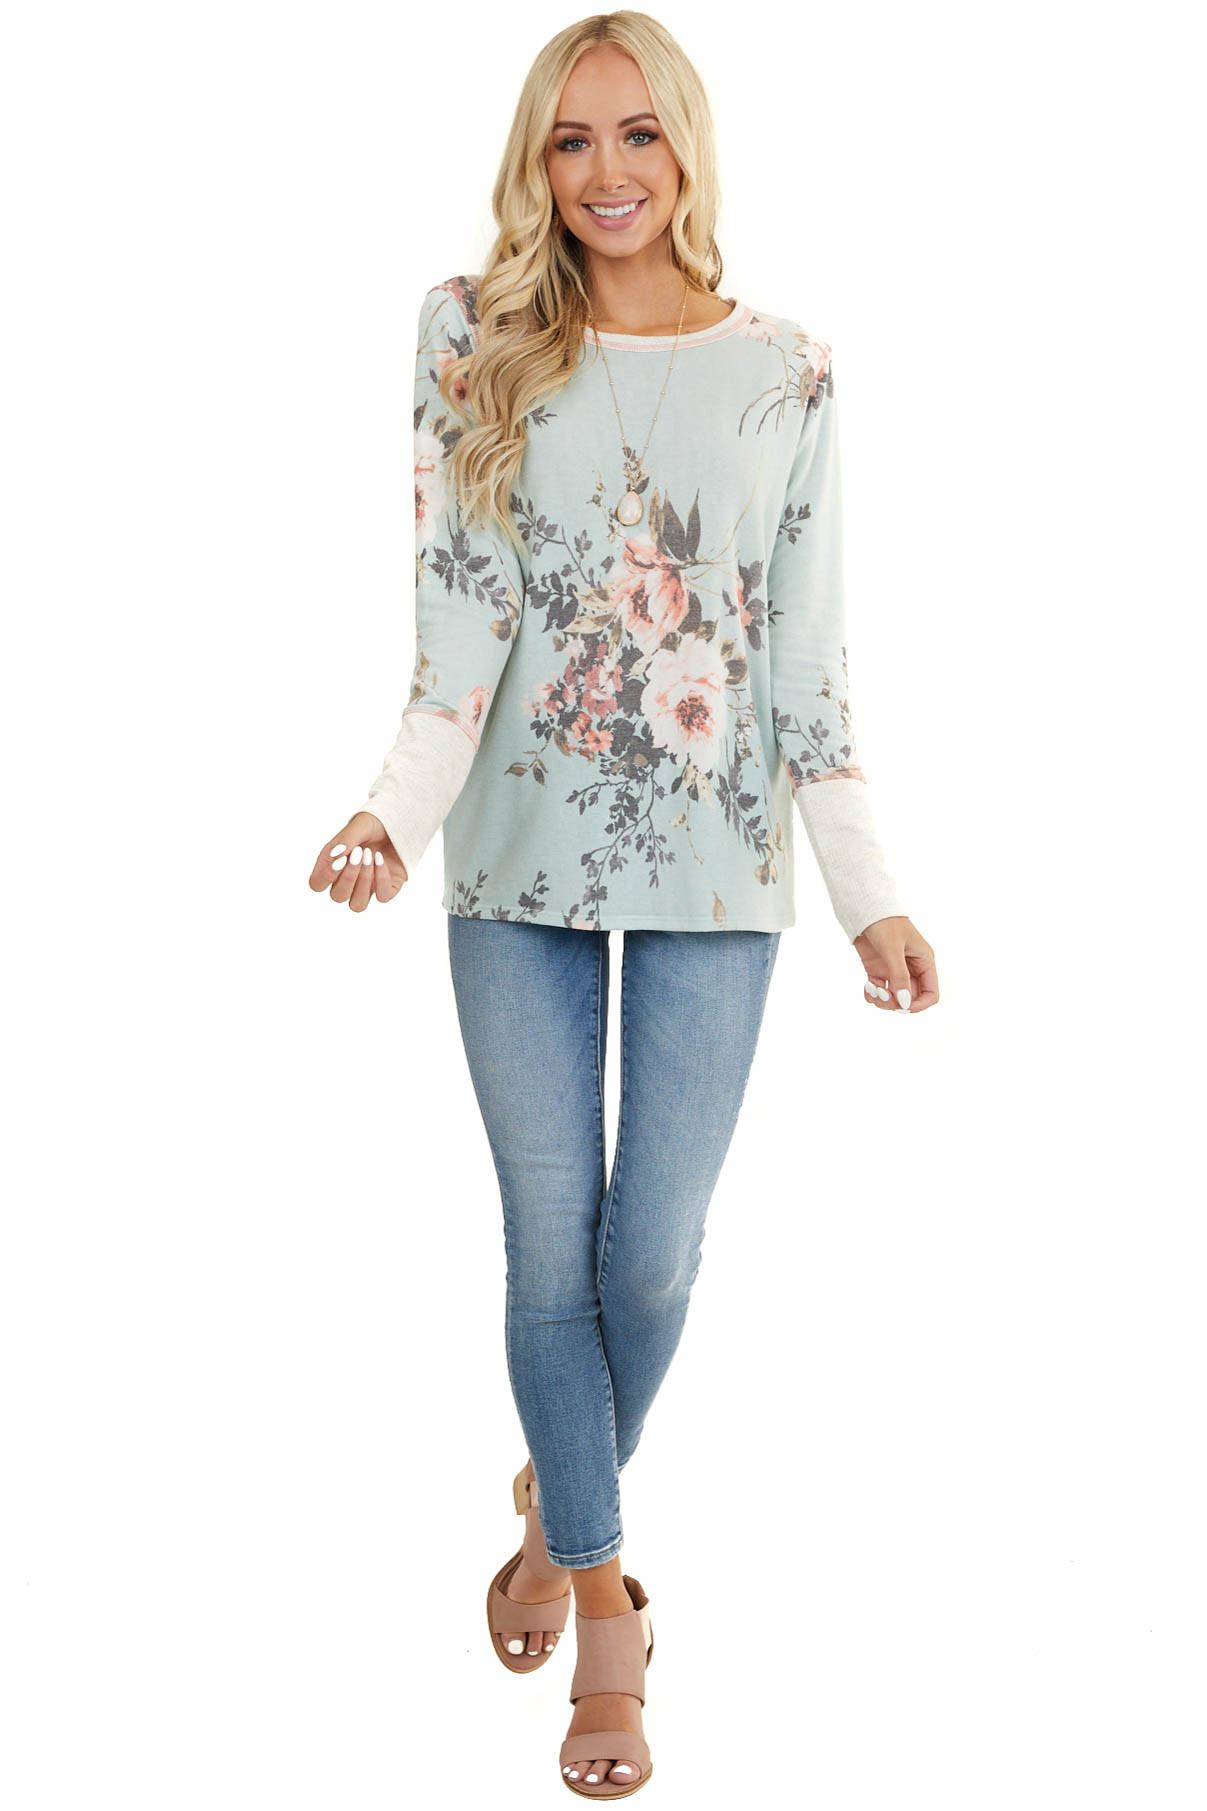 Sky Blue Floral Print Long Sleeve Top with Cream Contrast